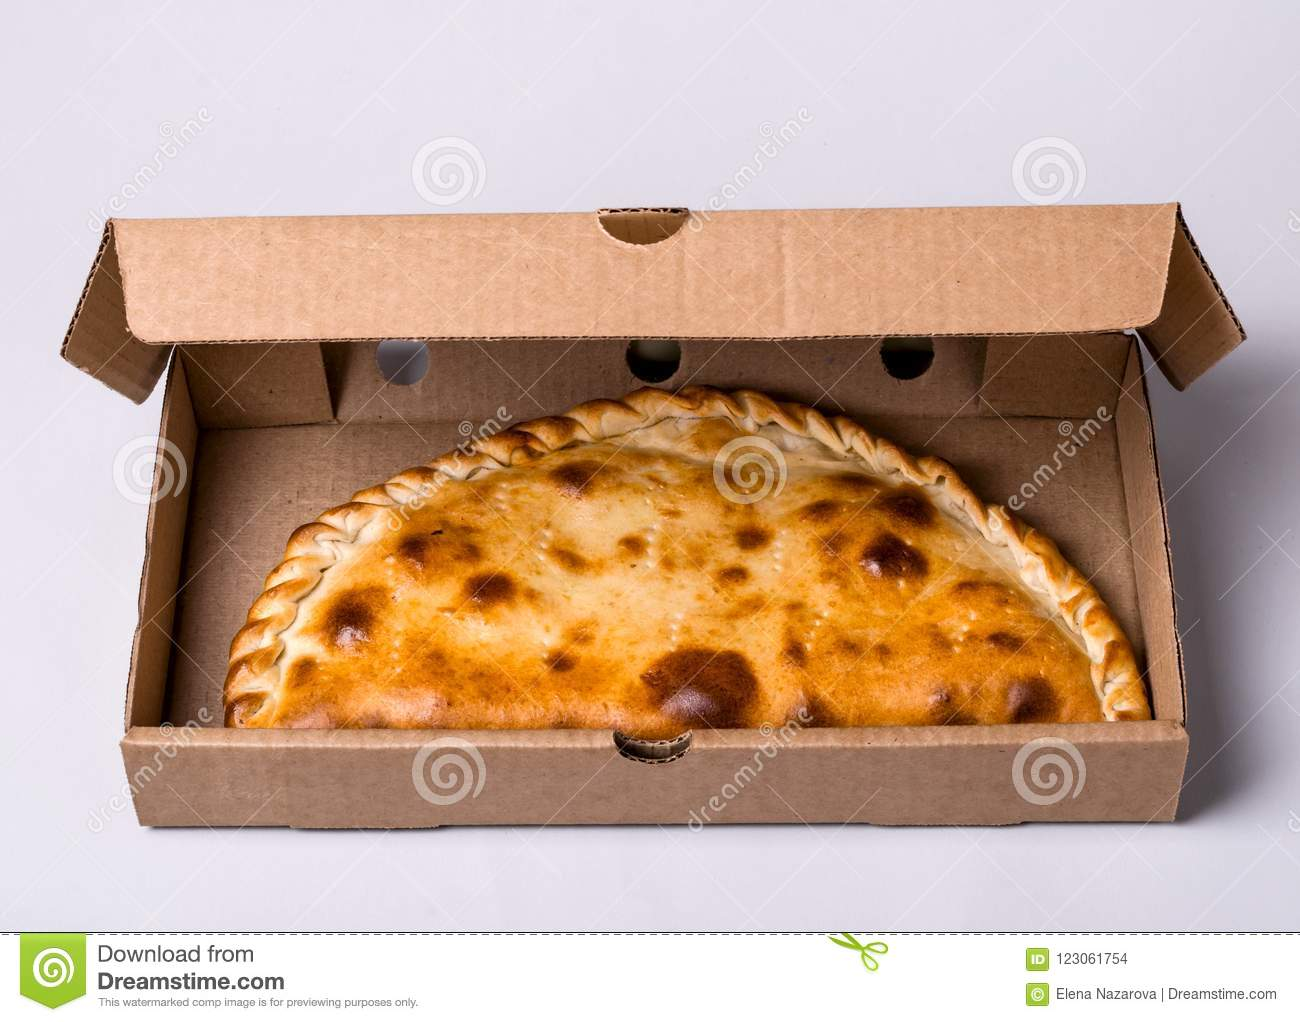 Closed Pizza Calzone In Packing Box On Gray Background Stock